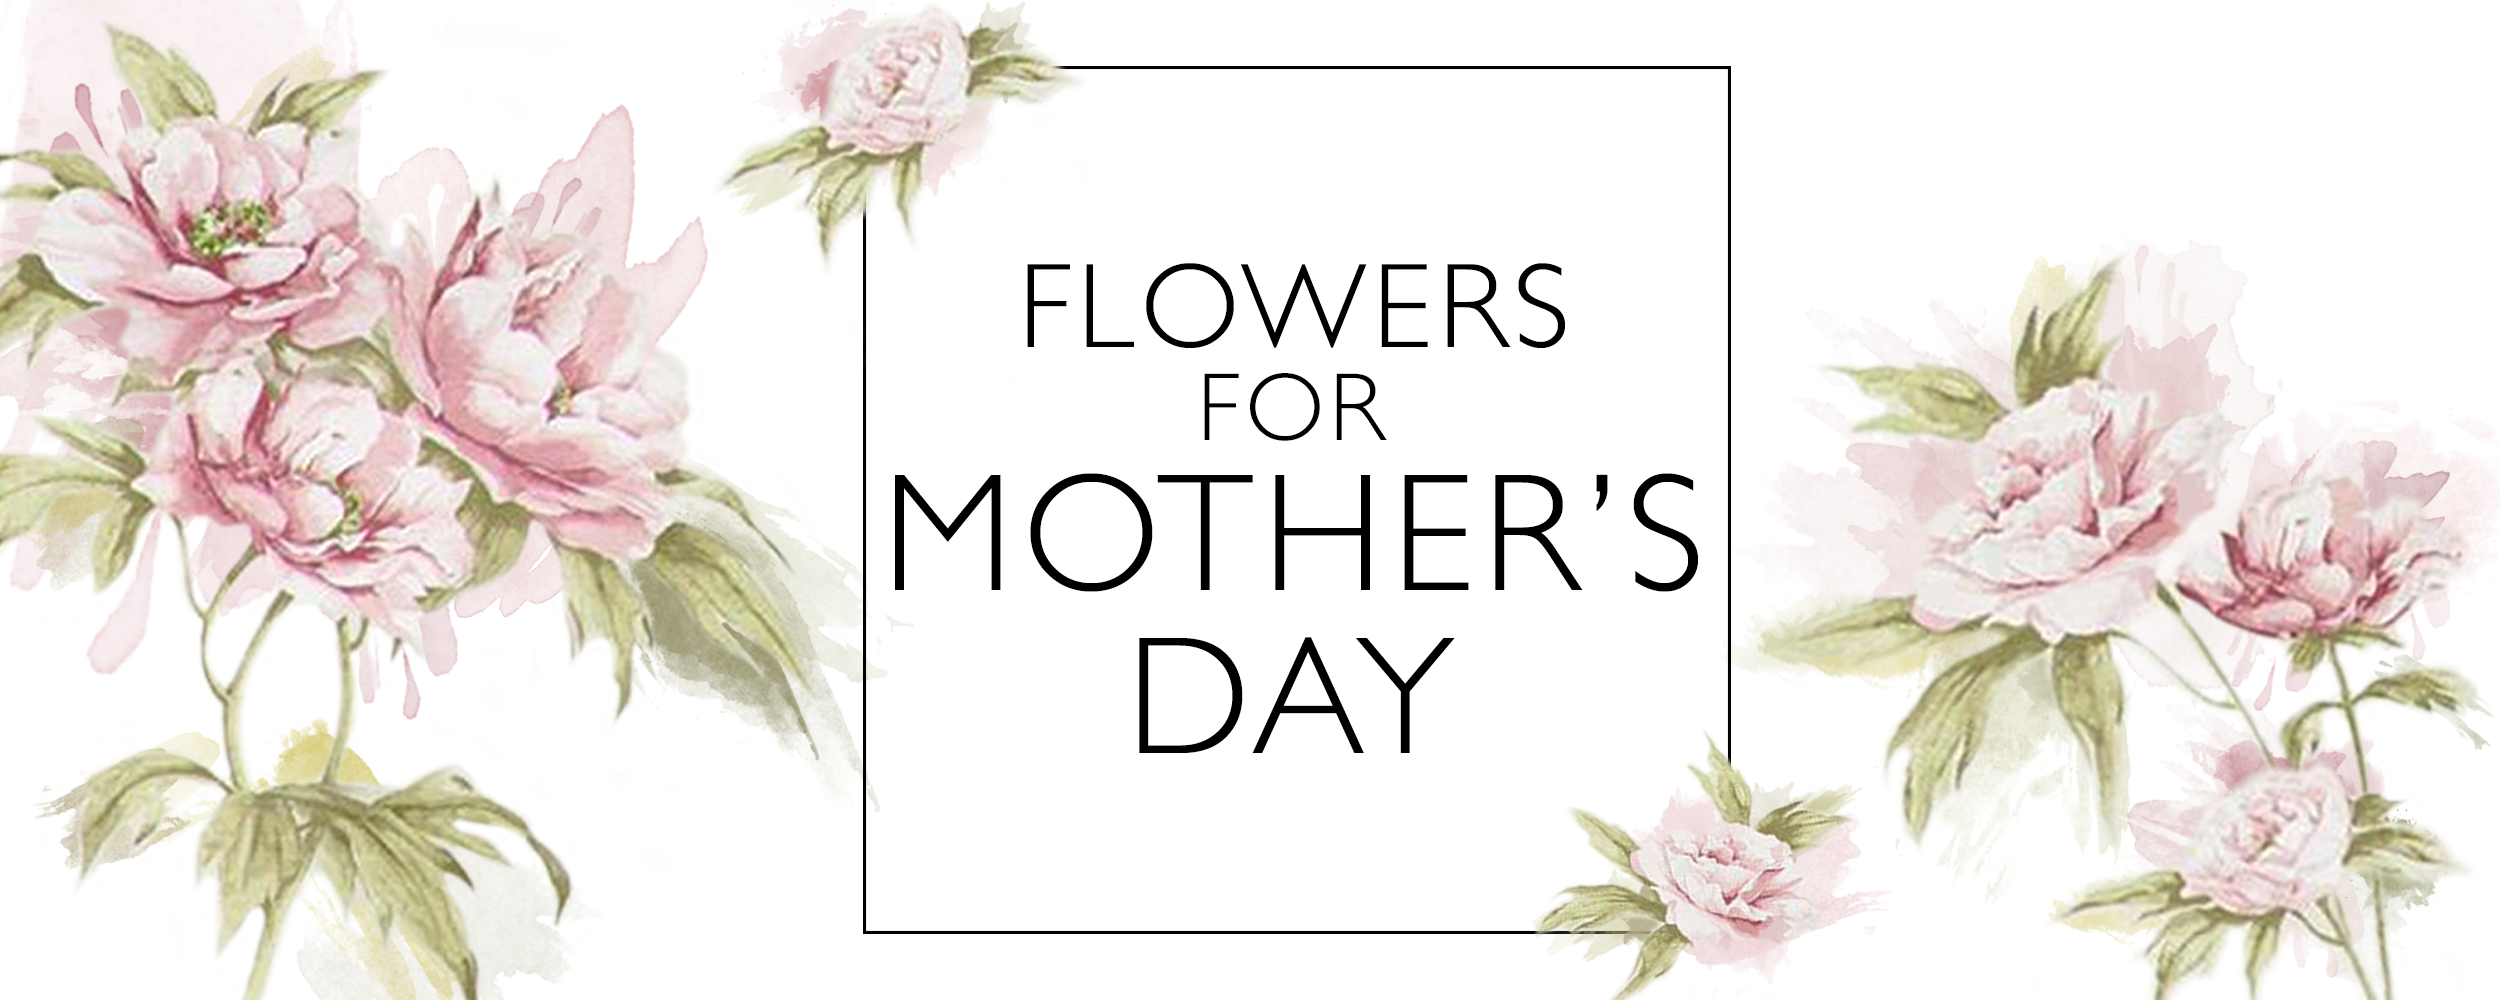 Flowers For Mothers Day Roman Blinds Blog